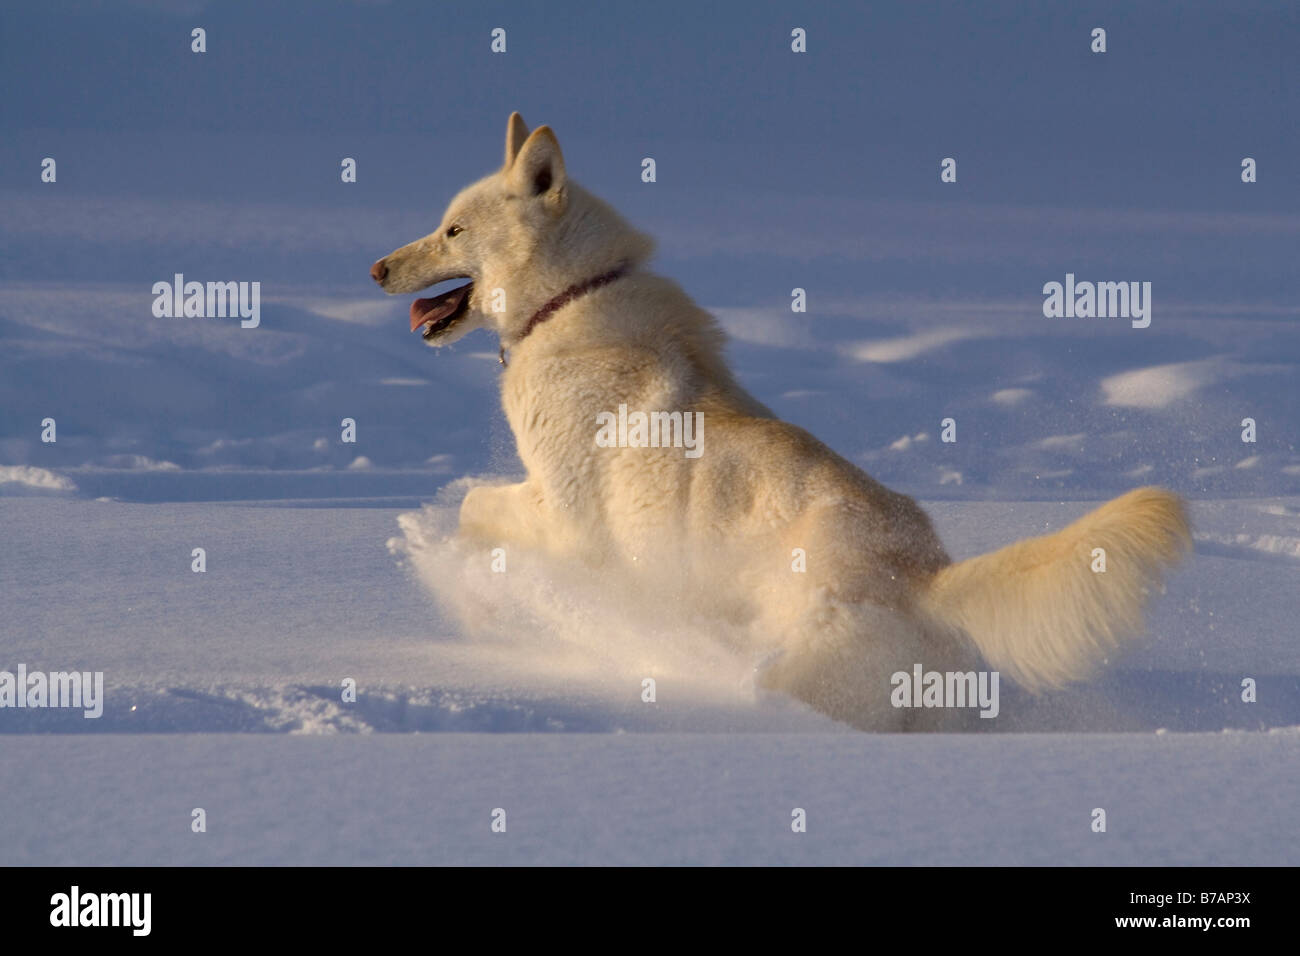 White husky, sled dog, sledge dog, revels in snow, Yukon Territory, Canada, North America - Stock Image